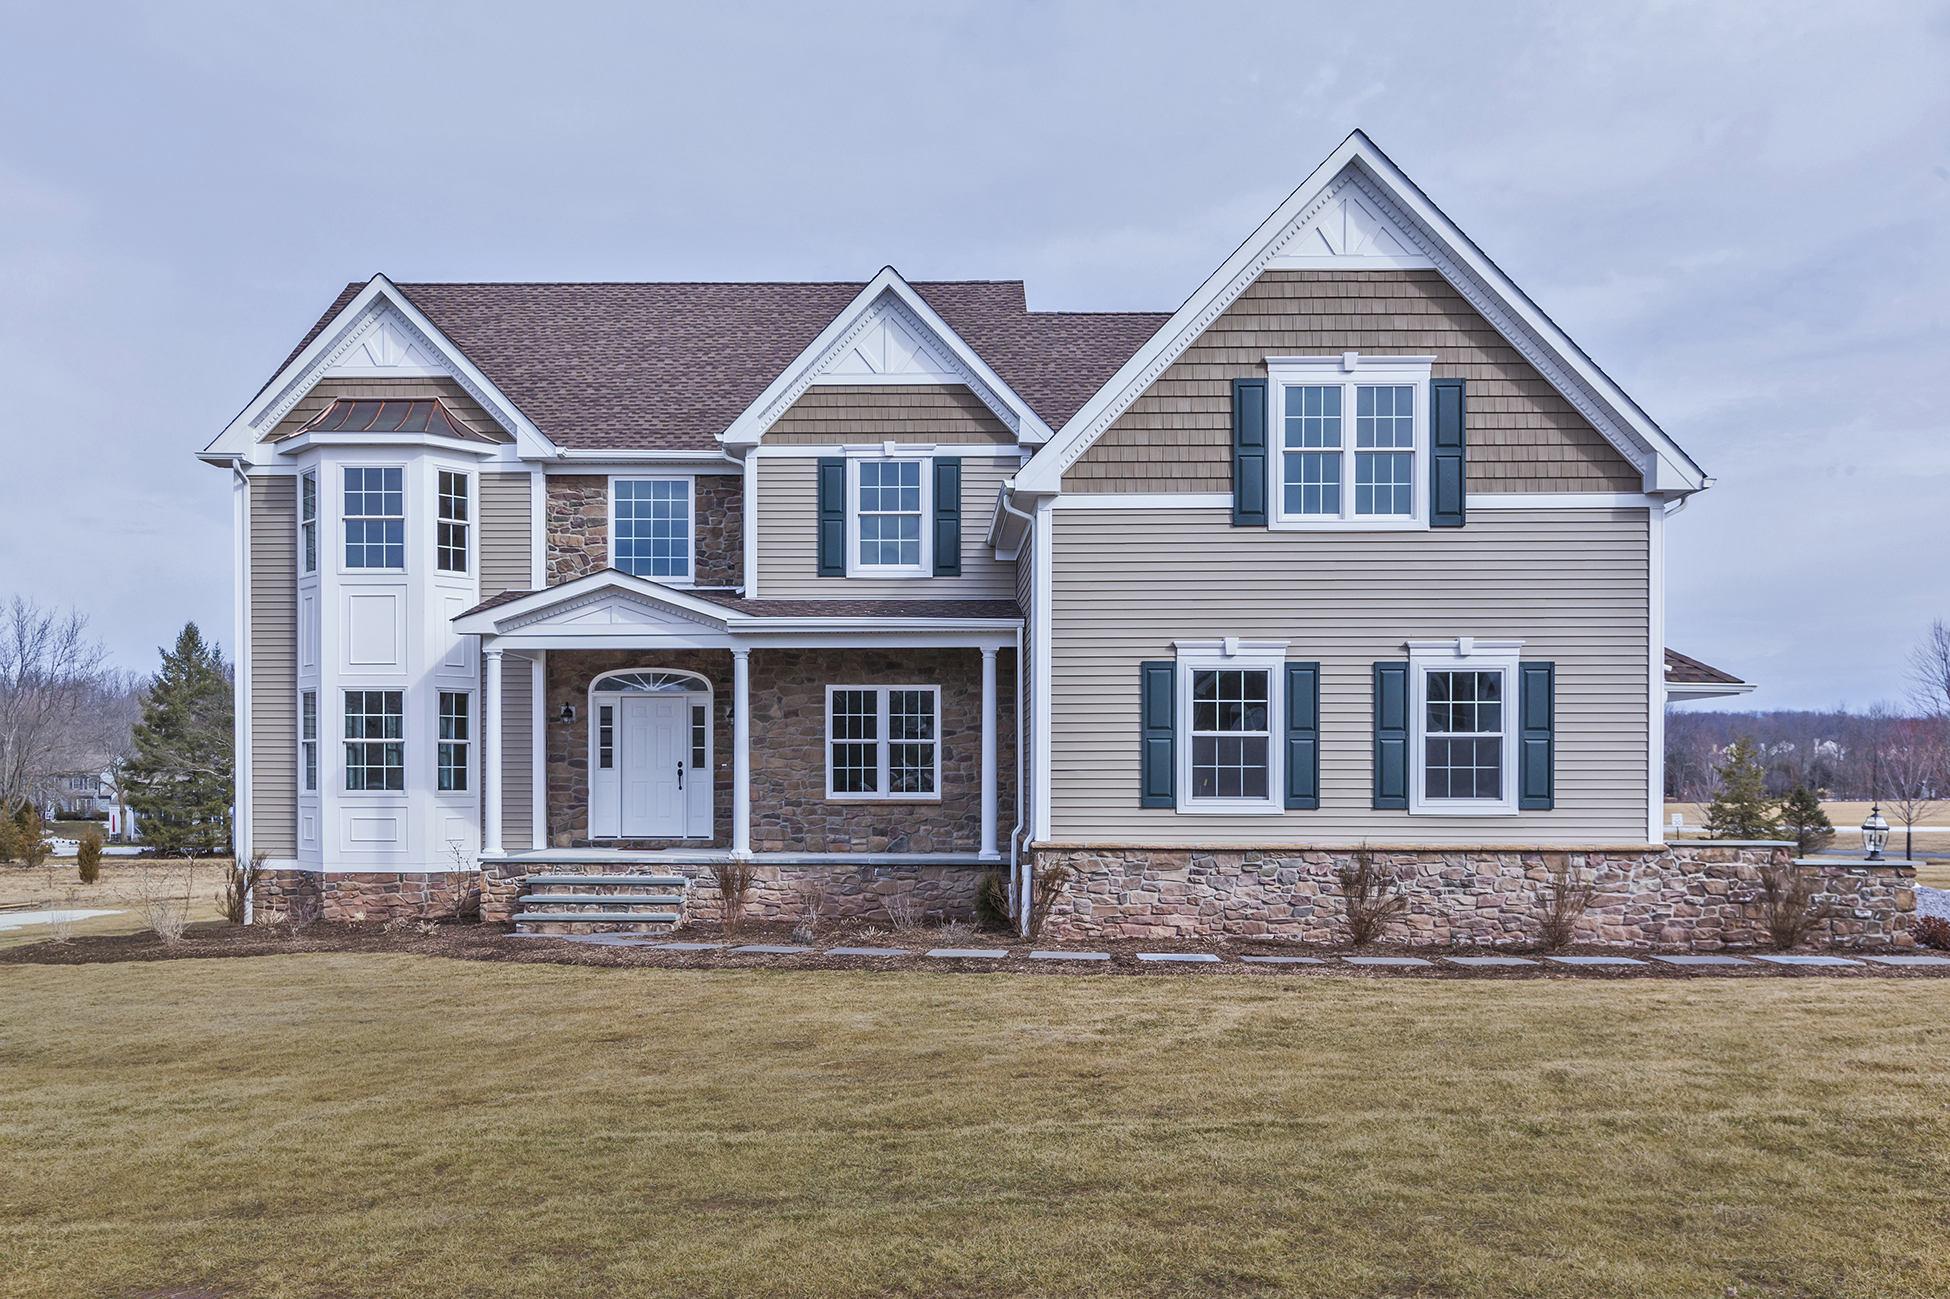 Property For Sale at Be In This Spring! - Delaware Township